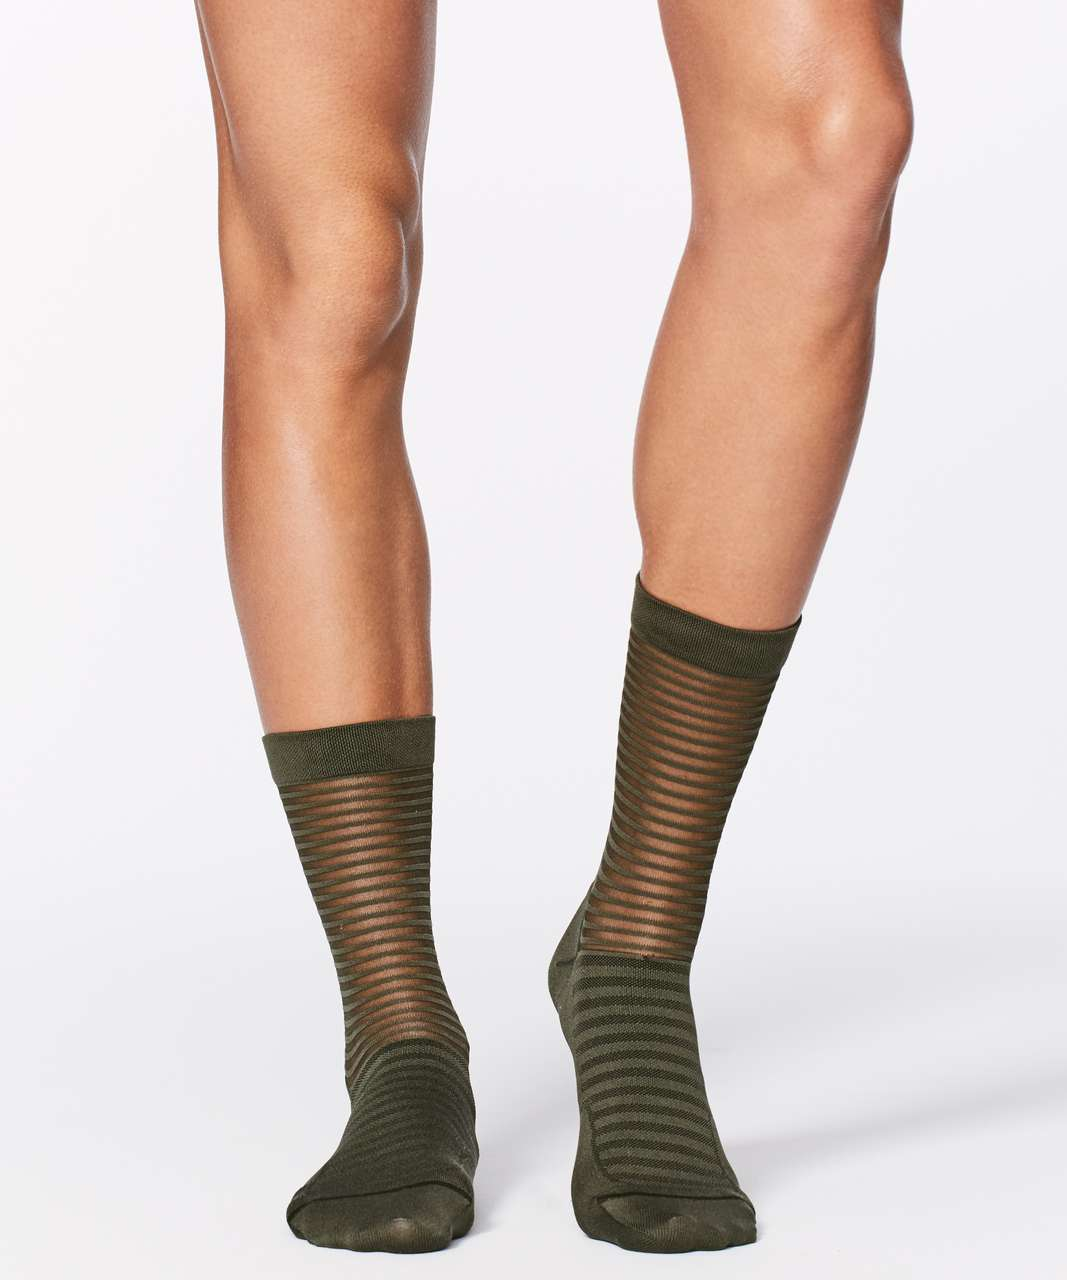 Lululemon Light On Your Toes Sock - Dark Olive